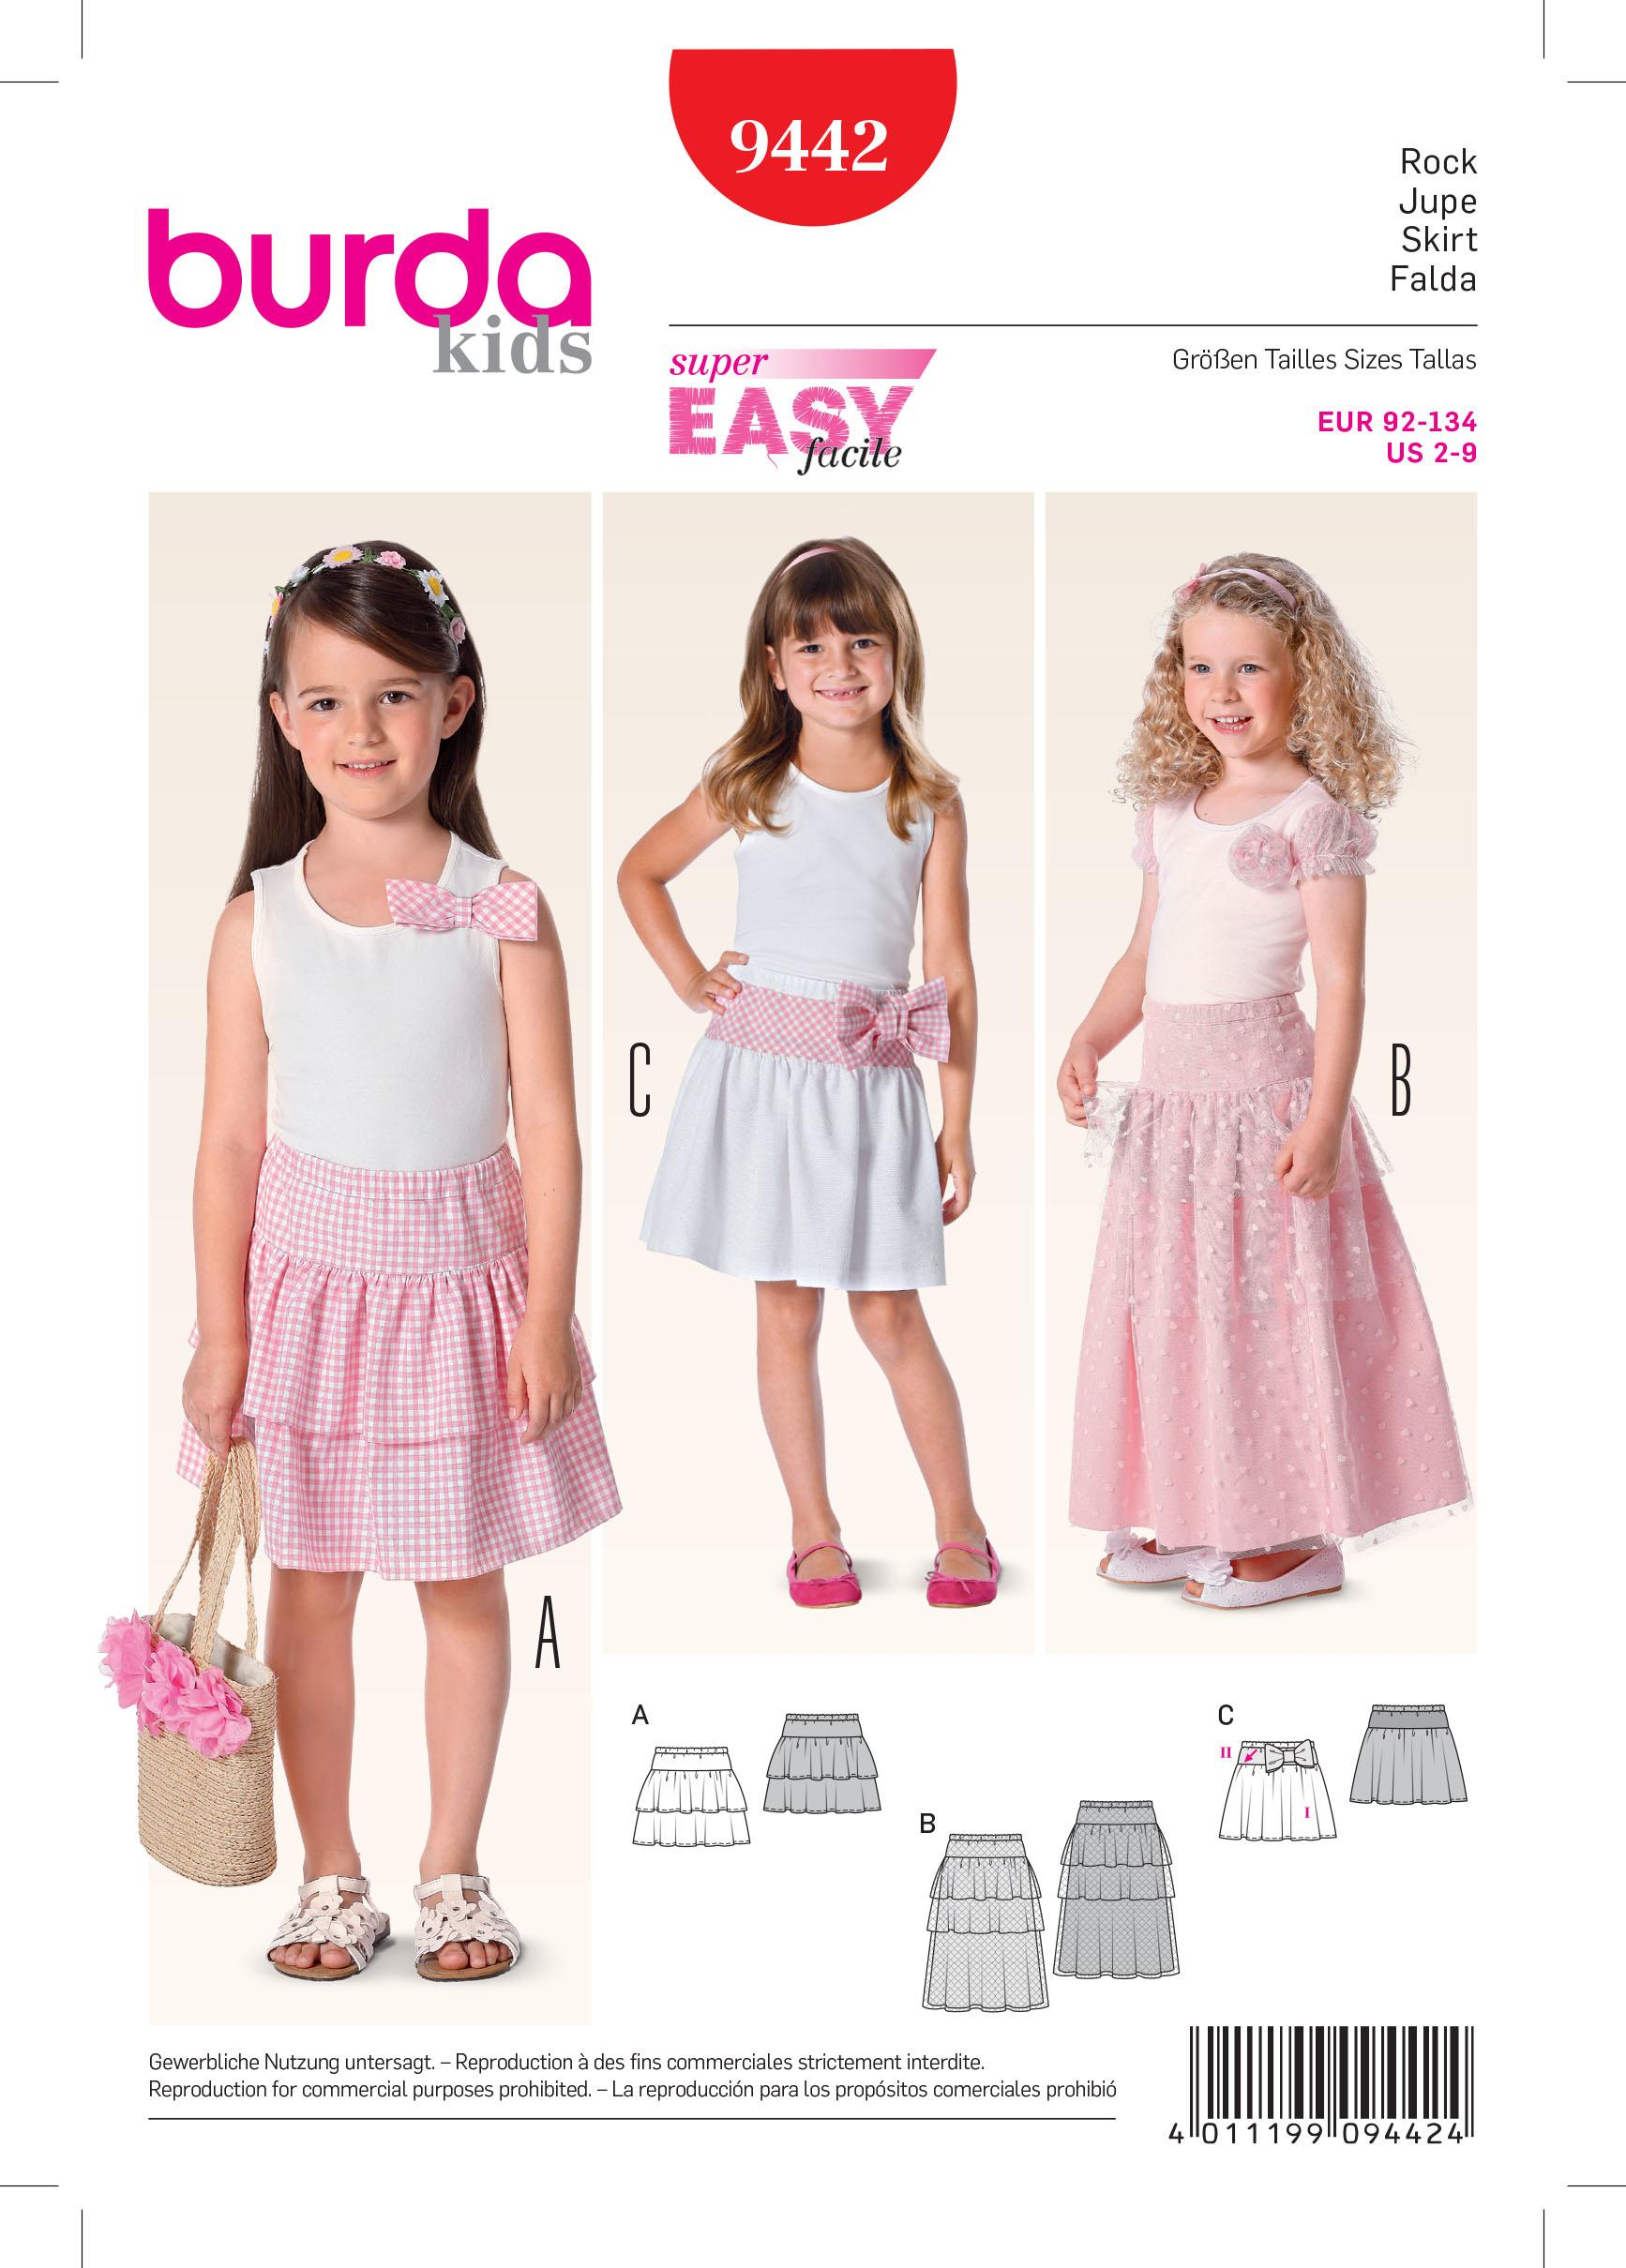 Burda B9442 Burda Children Sewing Pattern